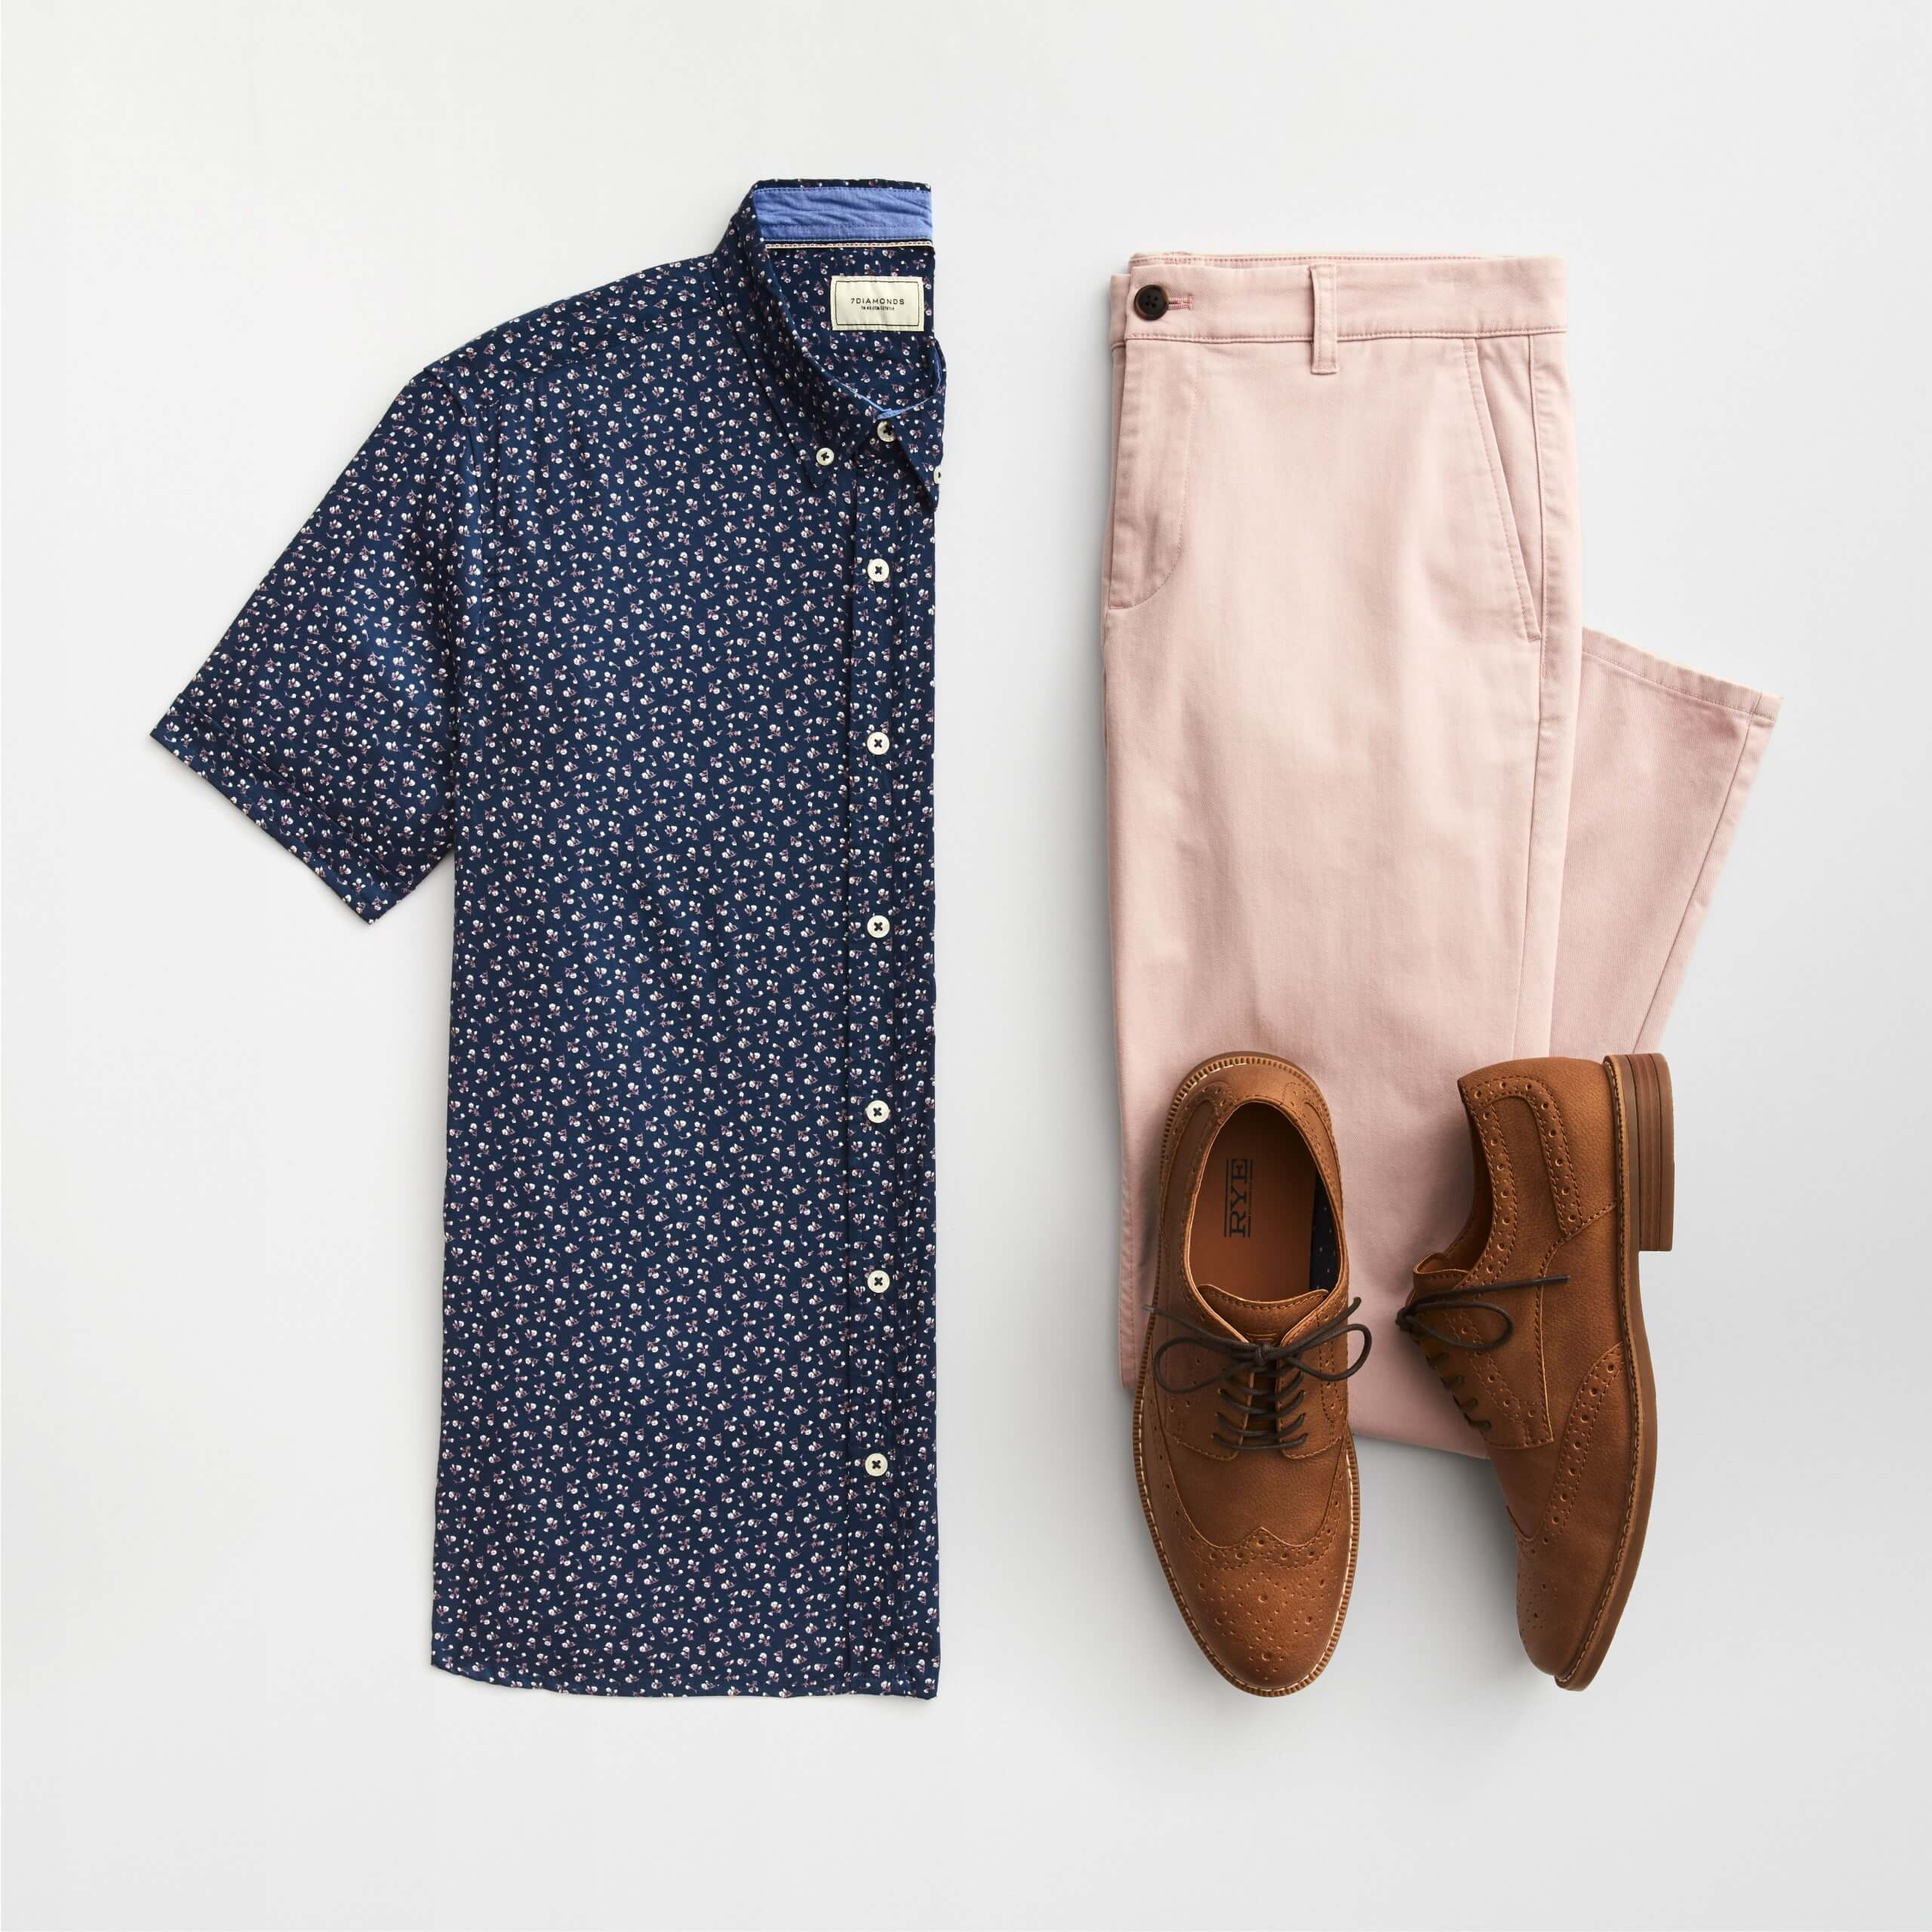 Stitch Fix Men's outfit laydown featuring short-sleeved navy button-down with small floral print, pink chinos and brown brogues.